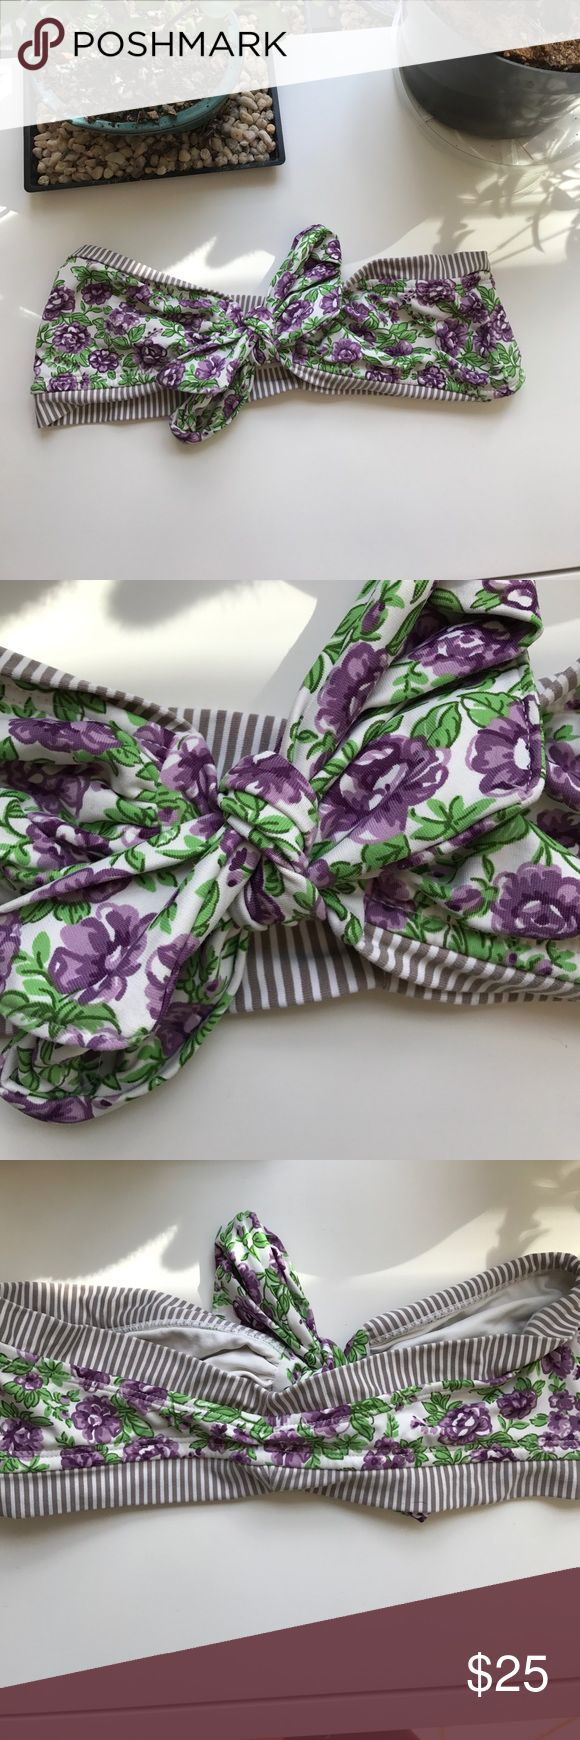 Anthropologie tie bandeau swim top Super cute bandeau bikini top from anthropologie. Brand: SAHA. Size large but fits a medium as well since it is adjustable. Purple flowers with green leaf design and white and brown/tan stripes Anthropologie Swim Bikinis